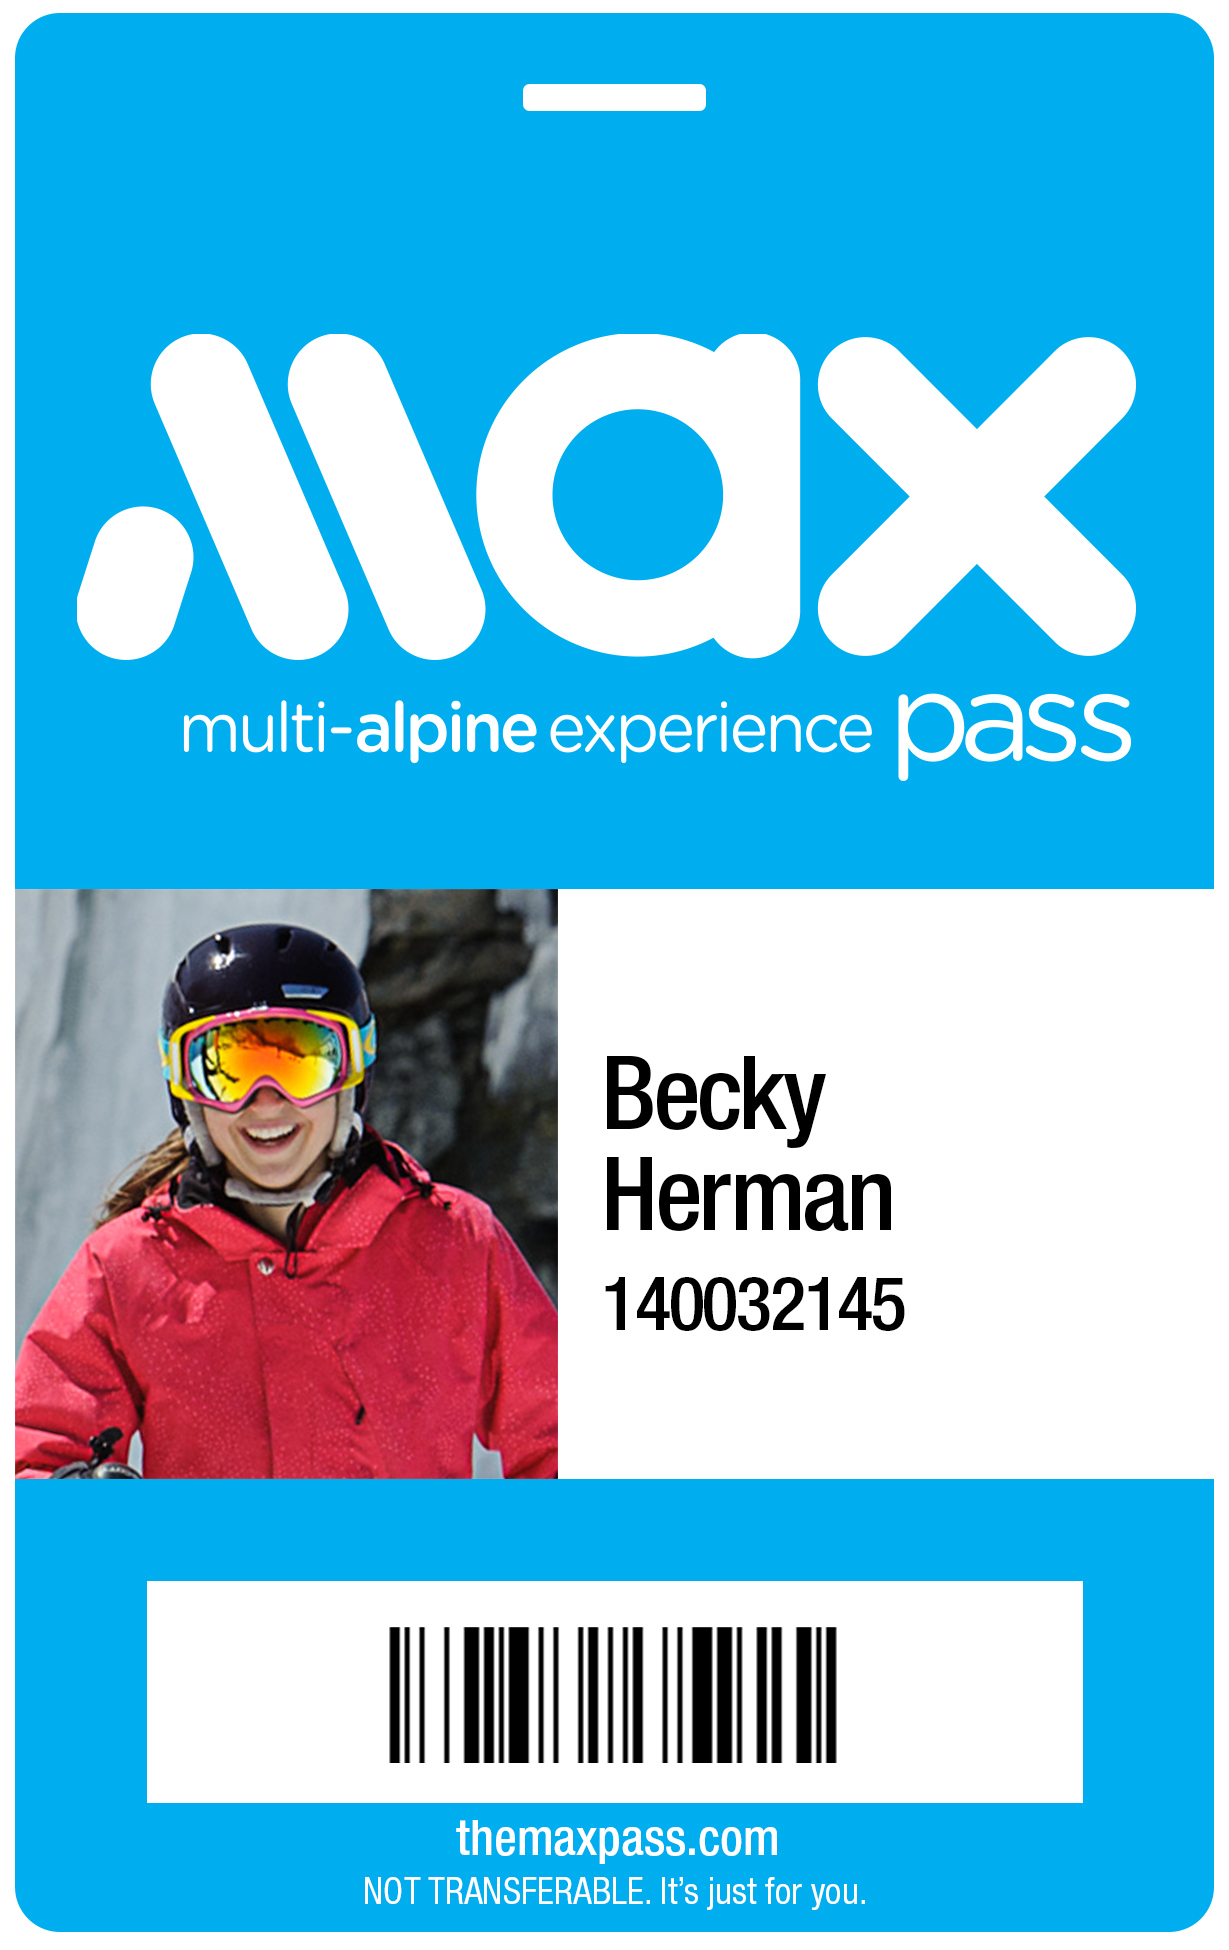 new m a x pass™ gives skiers and snowboarders access to an